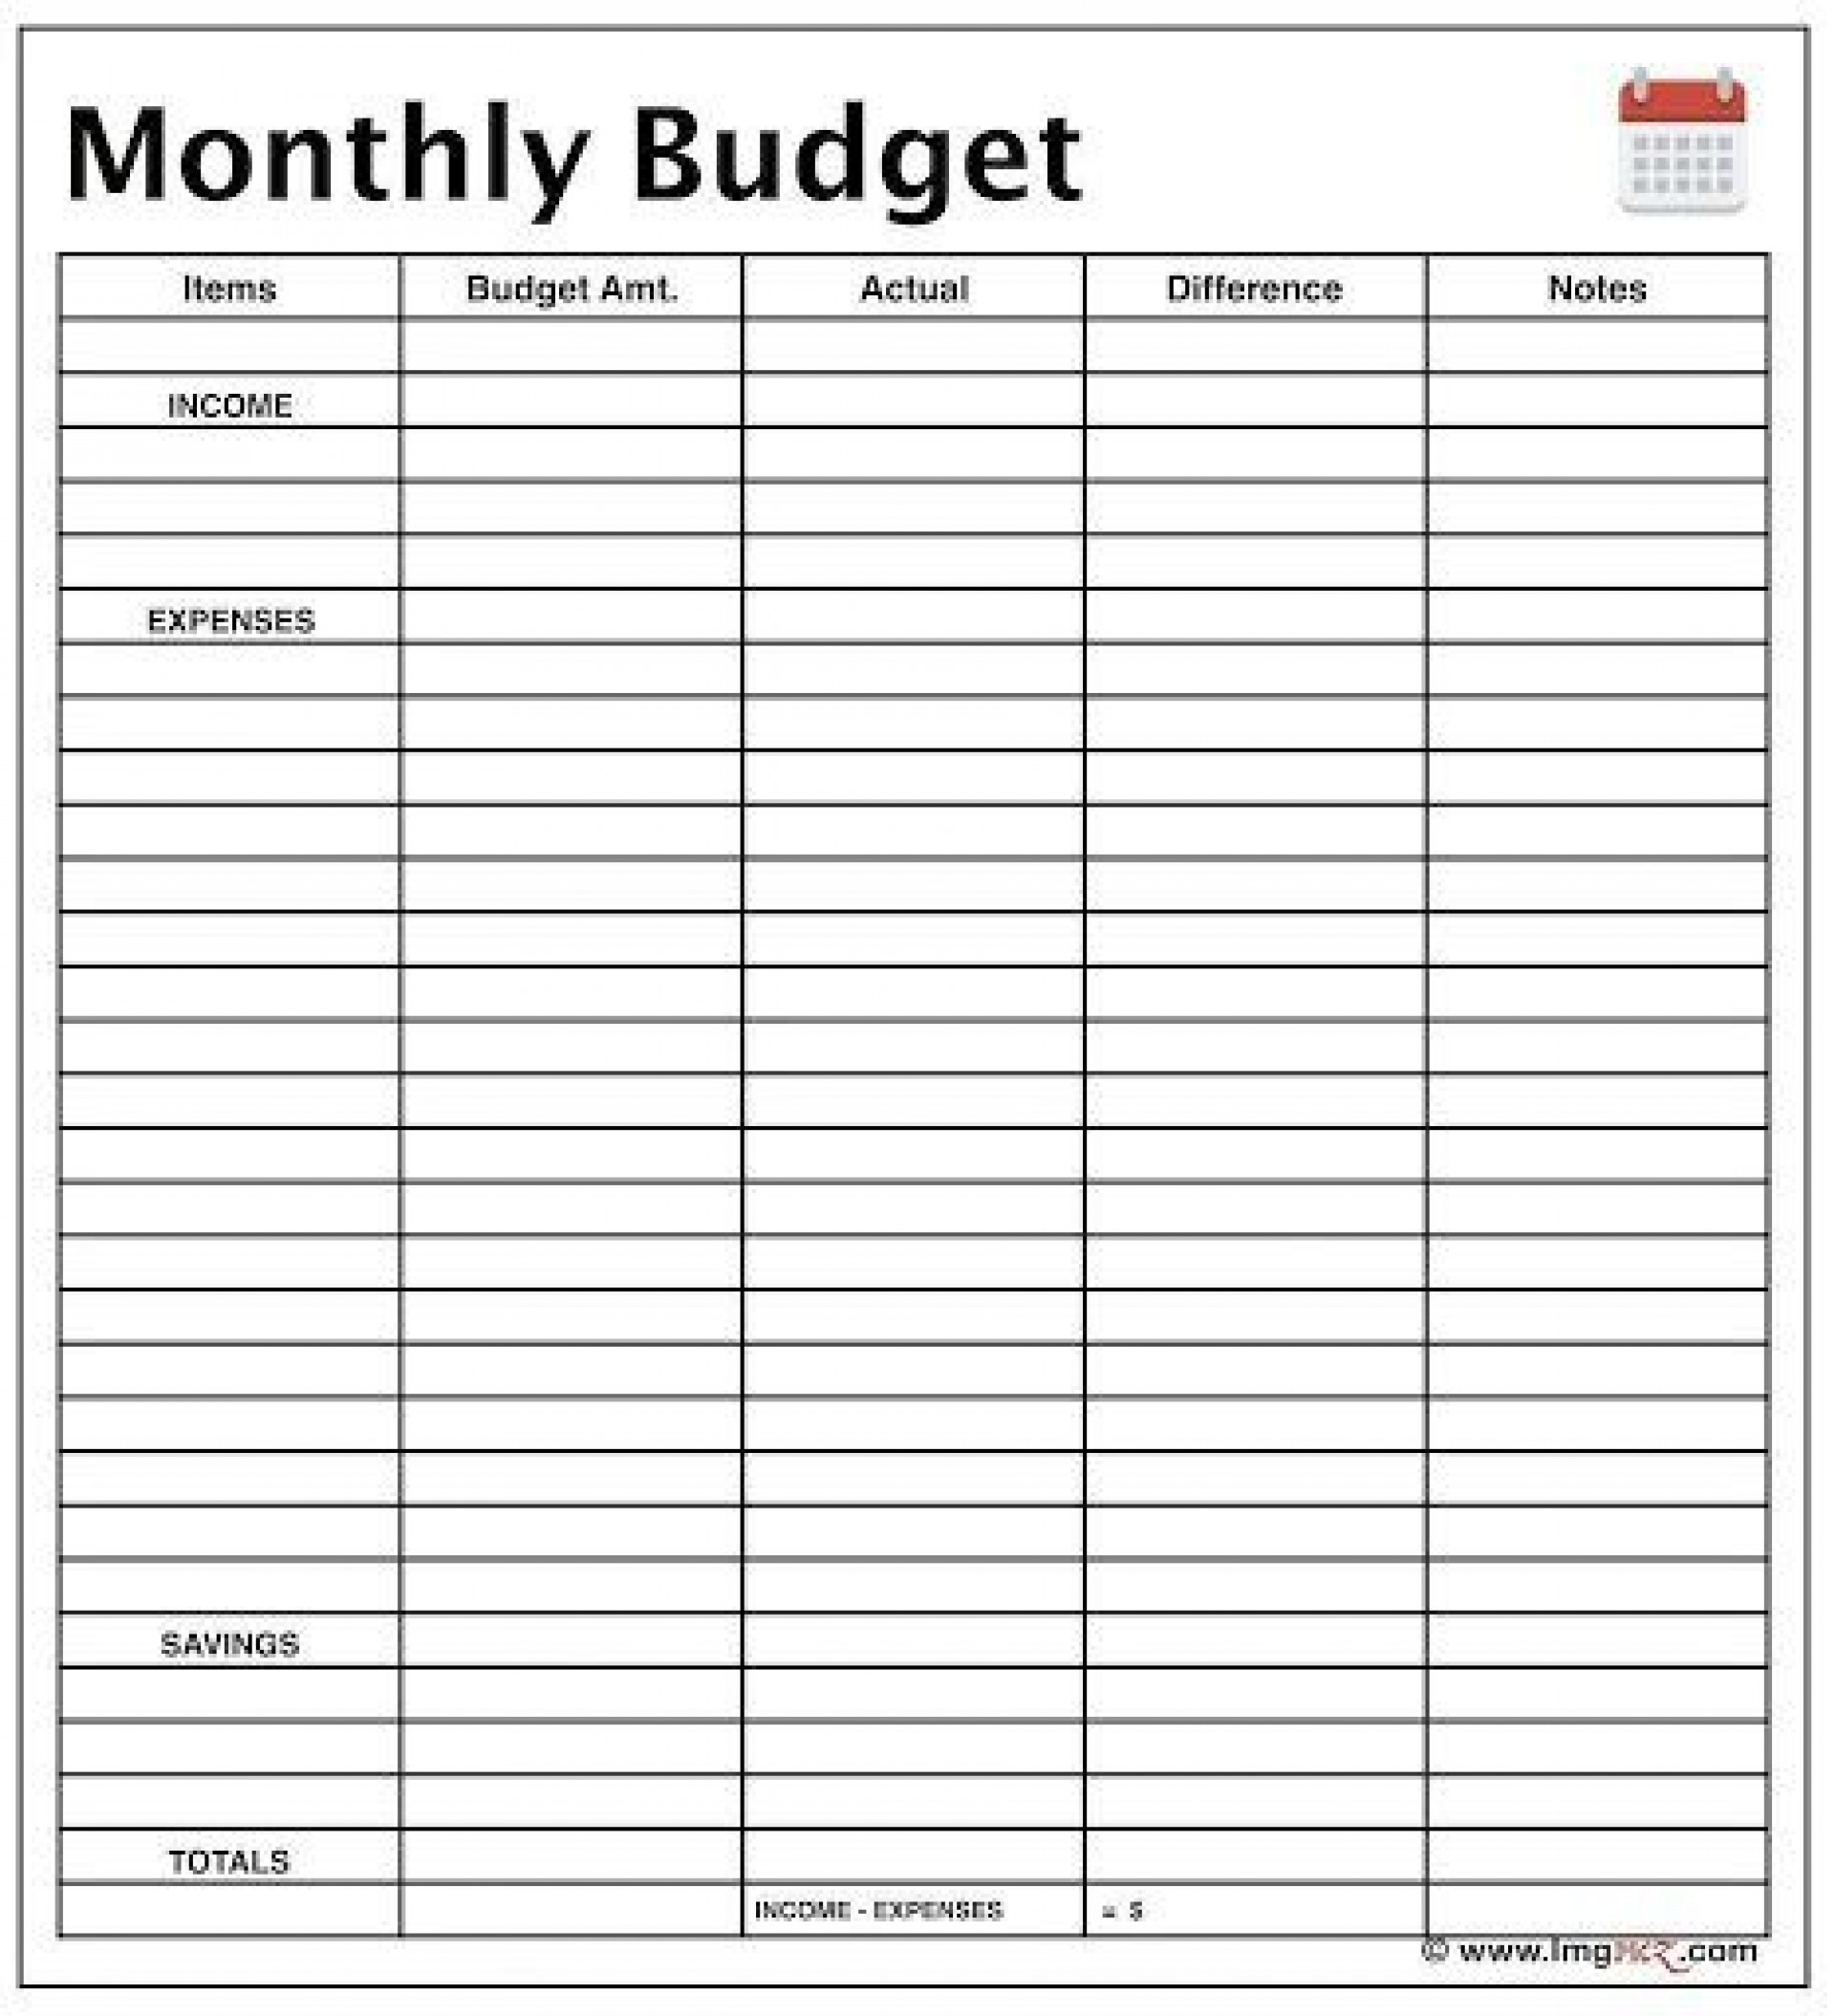 010 Marvelou Free Monthly Budget Worksheet Printable Highest Quality  Template Family Blank1920